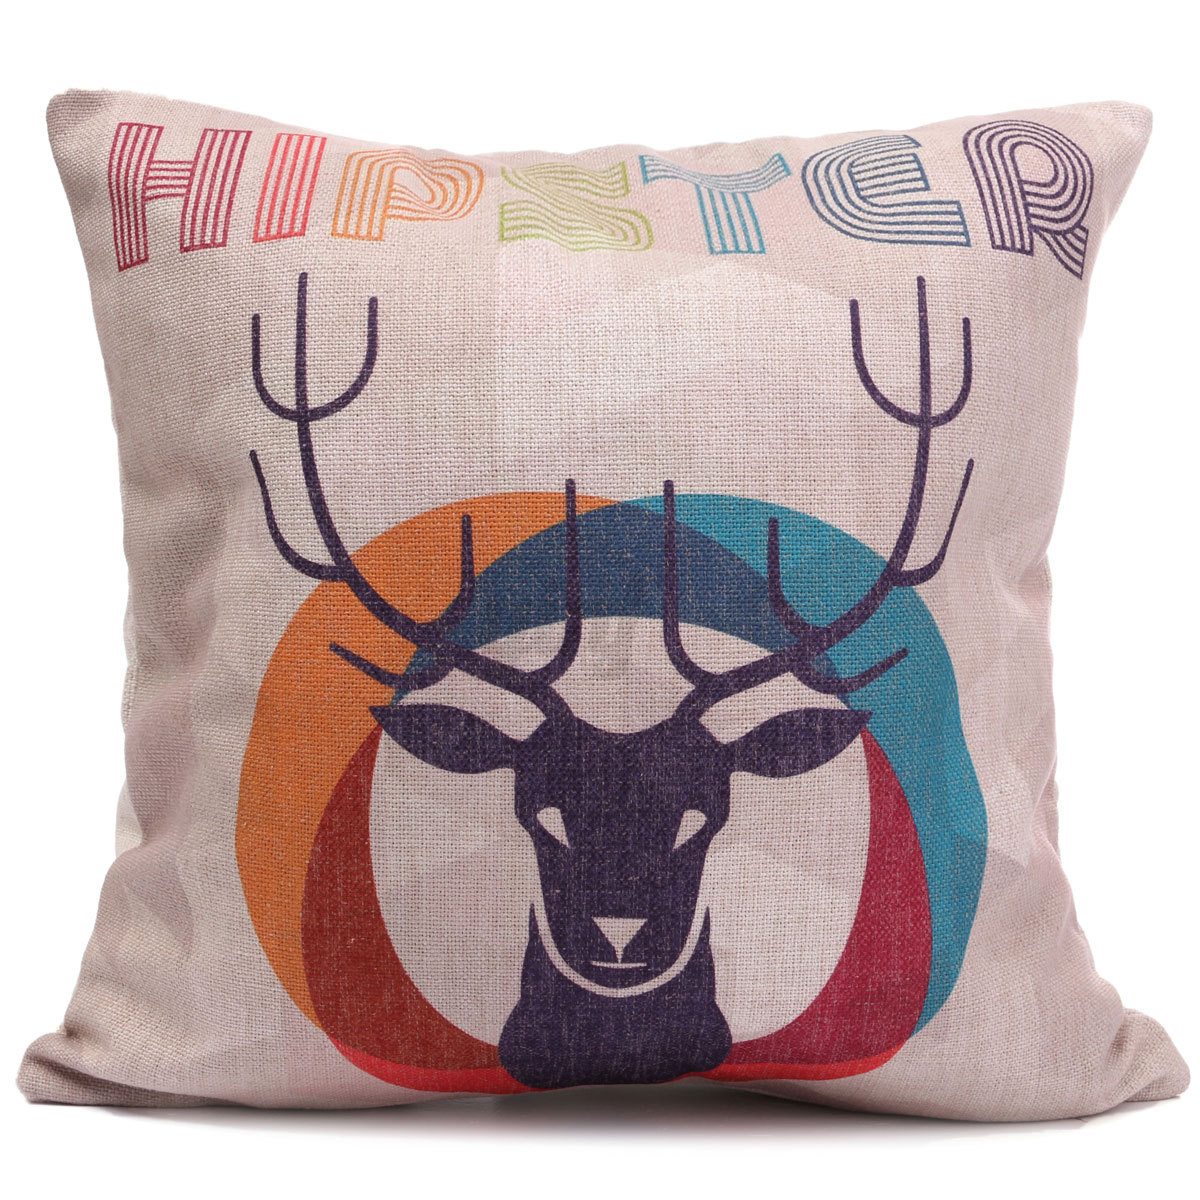 Linen Cotton Pillow Case Waist Back Throw Cushion Cover Home Sofa Car Decor eBay